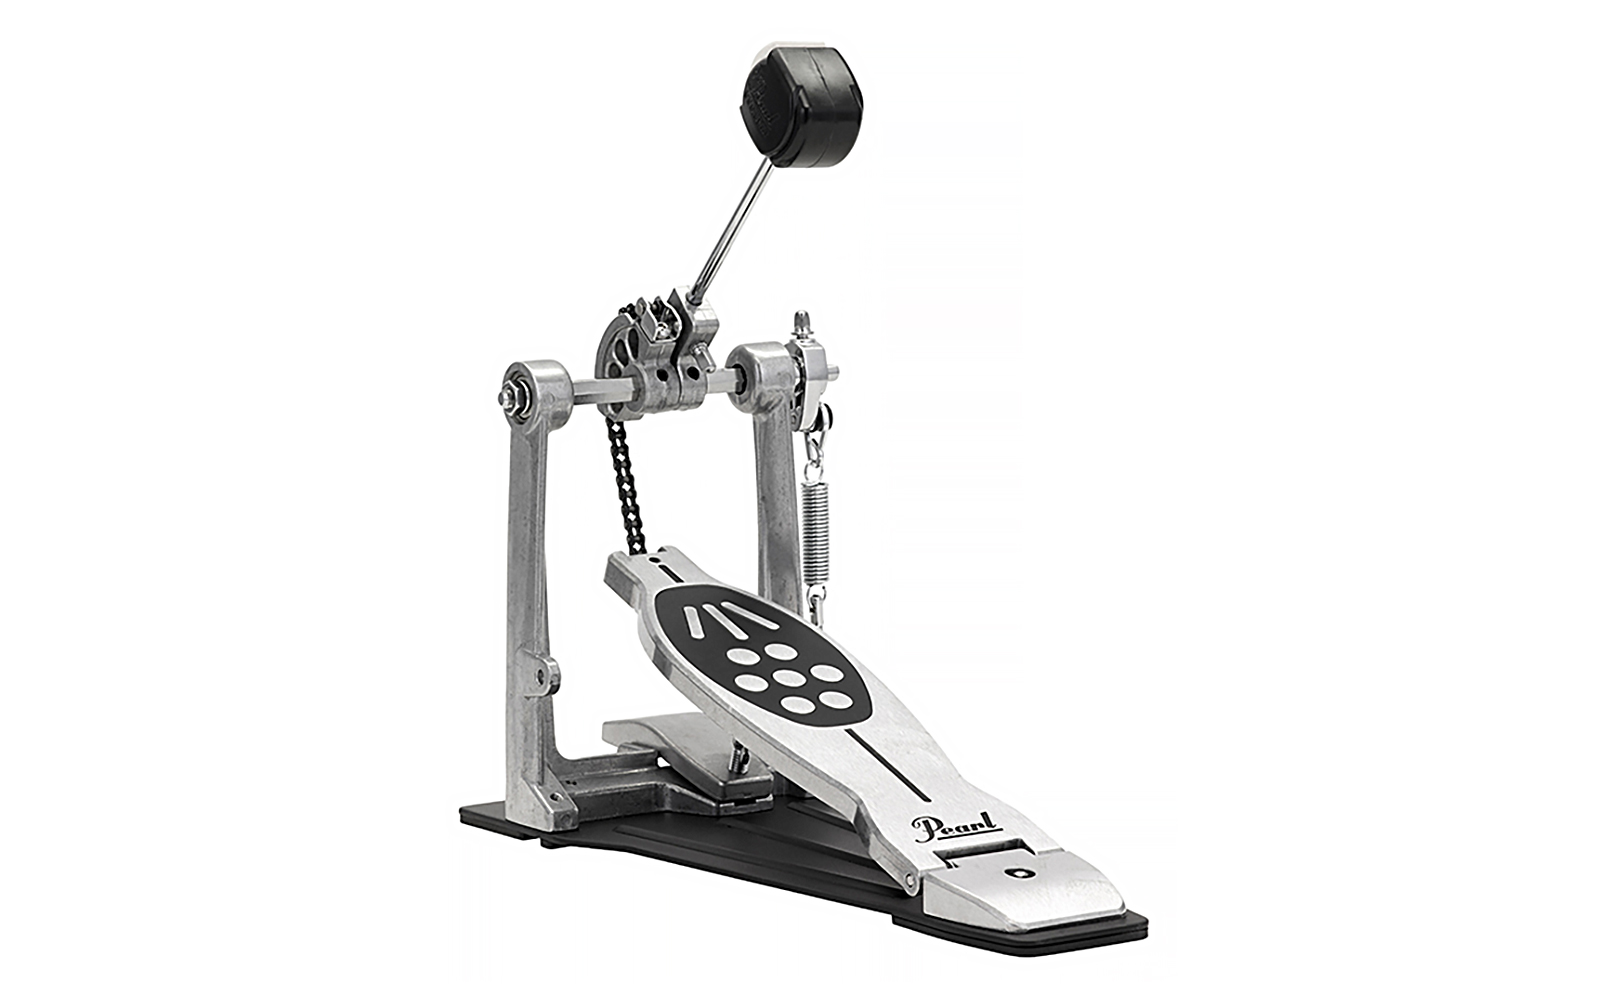 Pearl P-920 Bass Drum Pedal